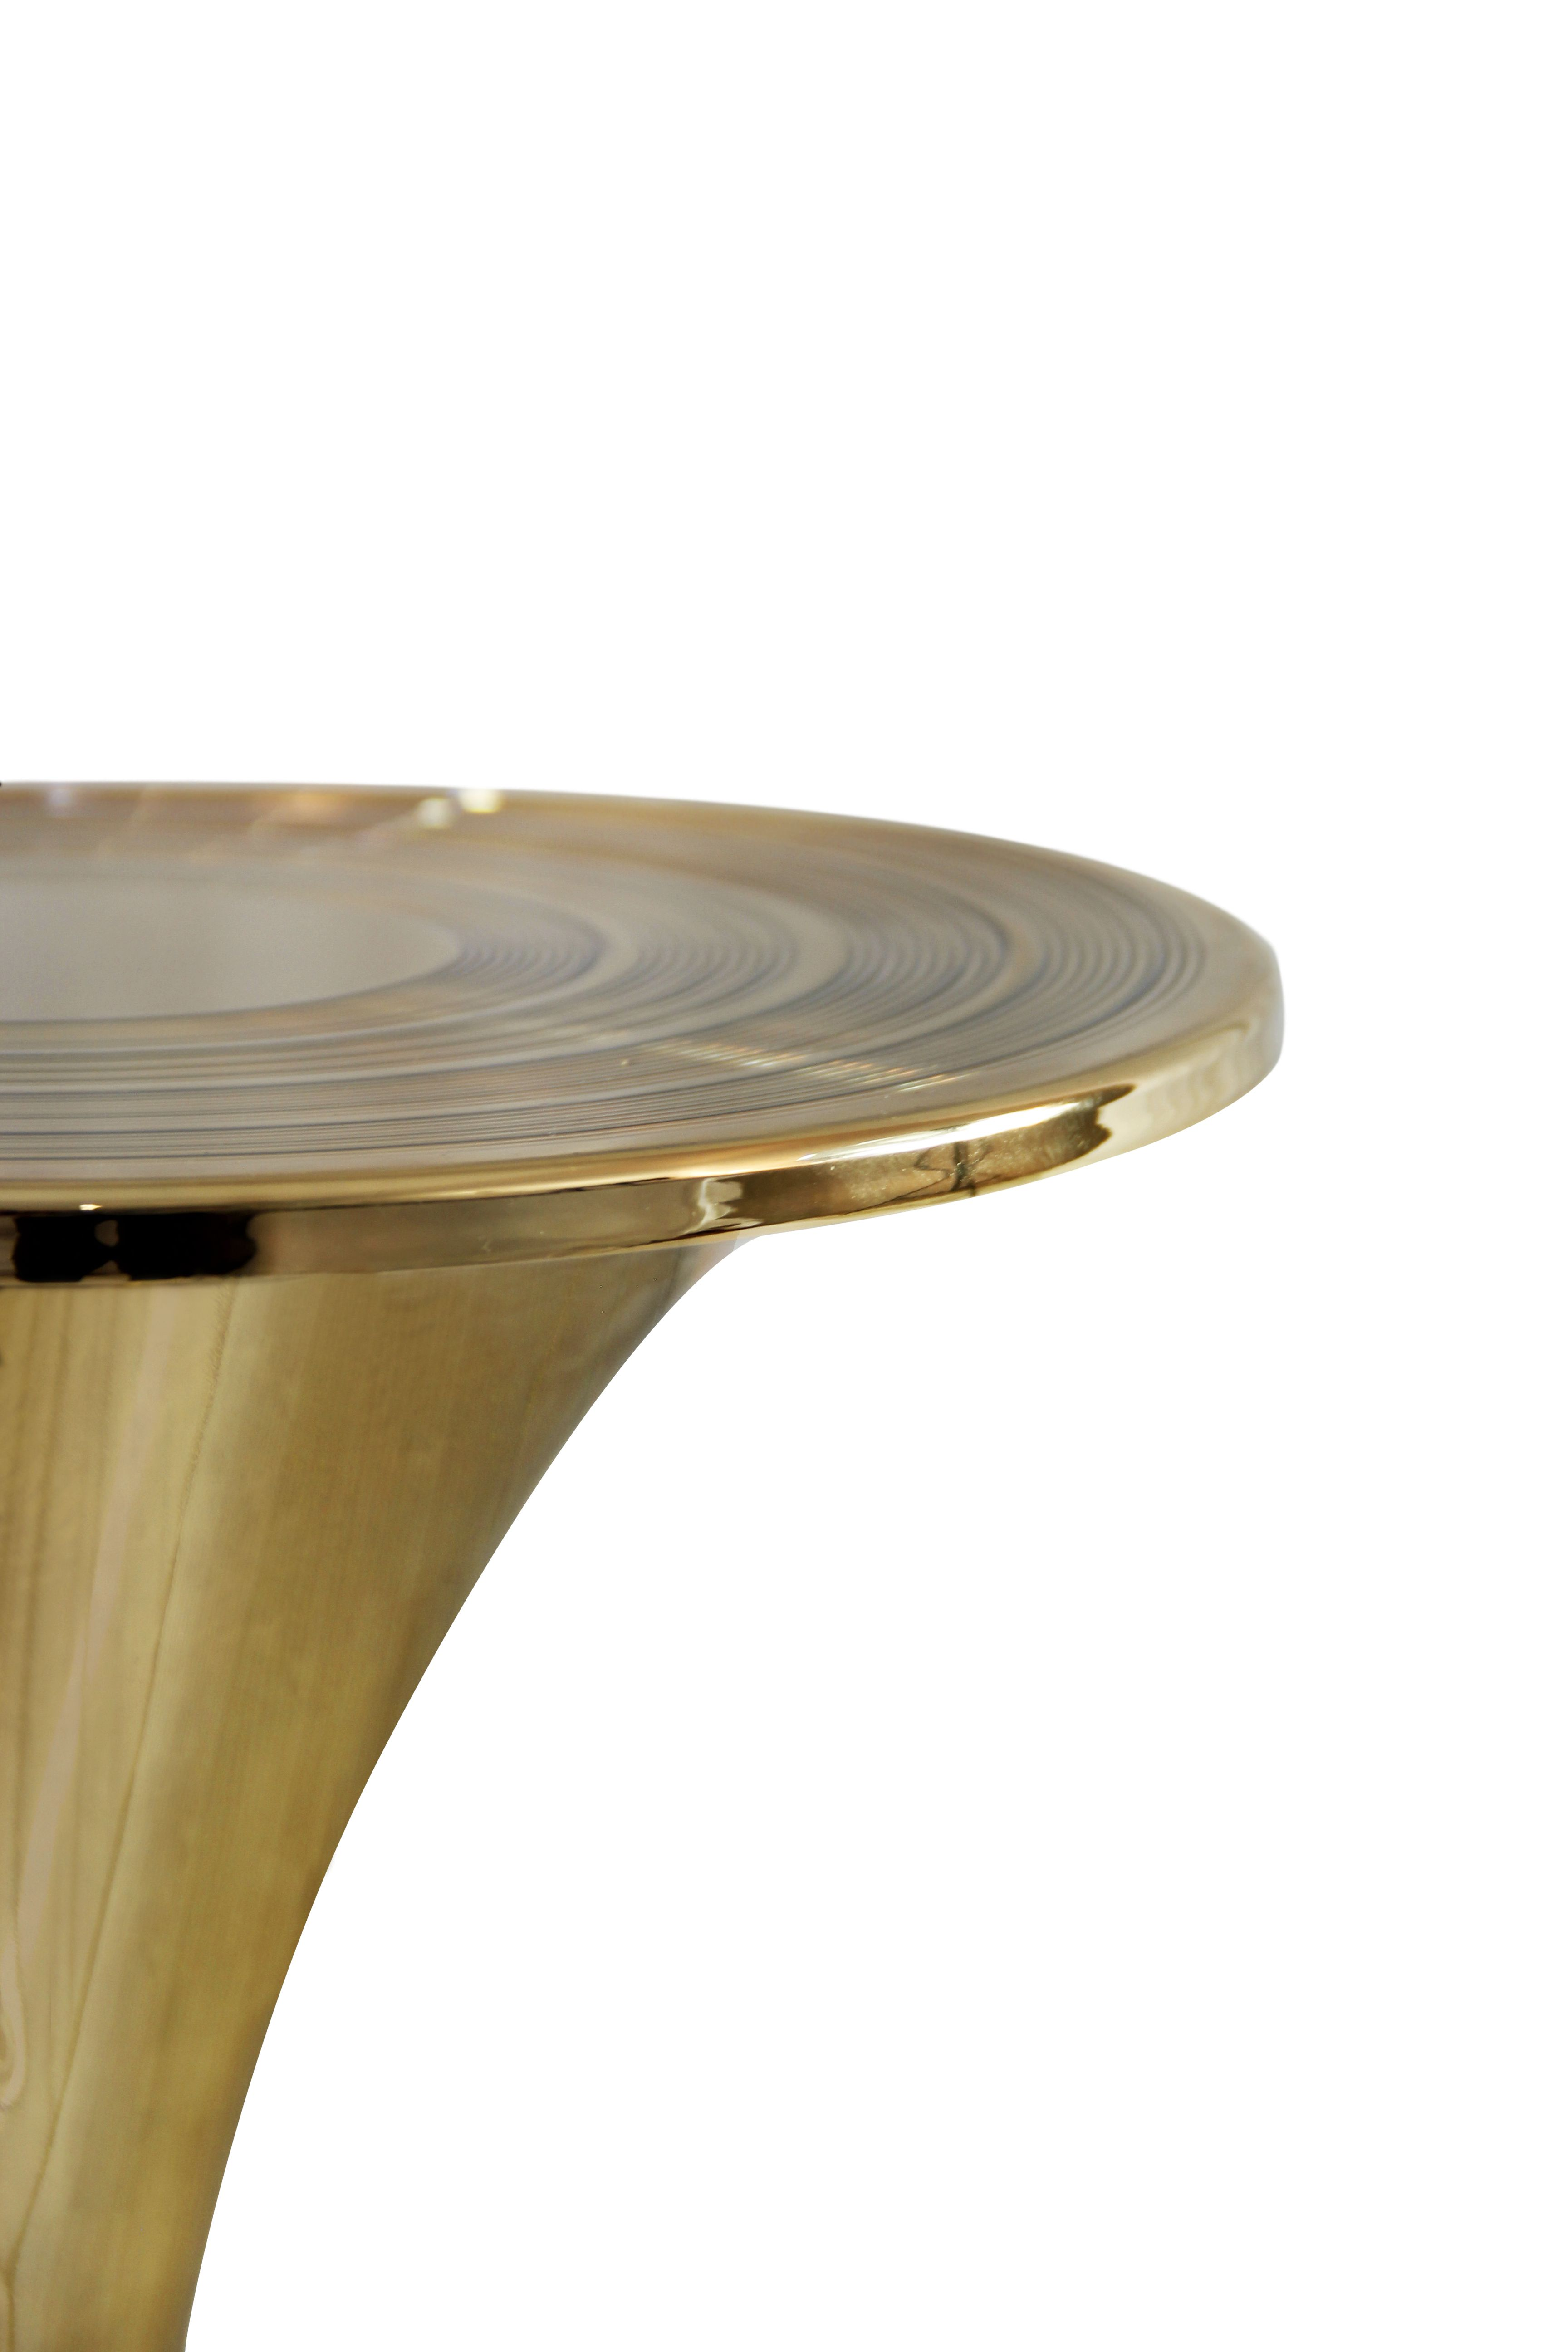 Sleek And Lean Botti Side Table Is A True Midcentury Modern Piece Lots Of Gold